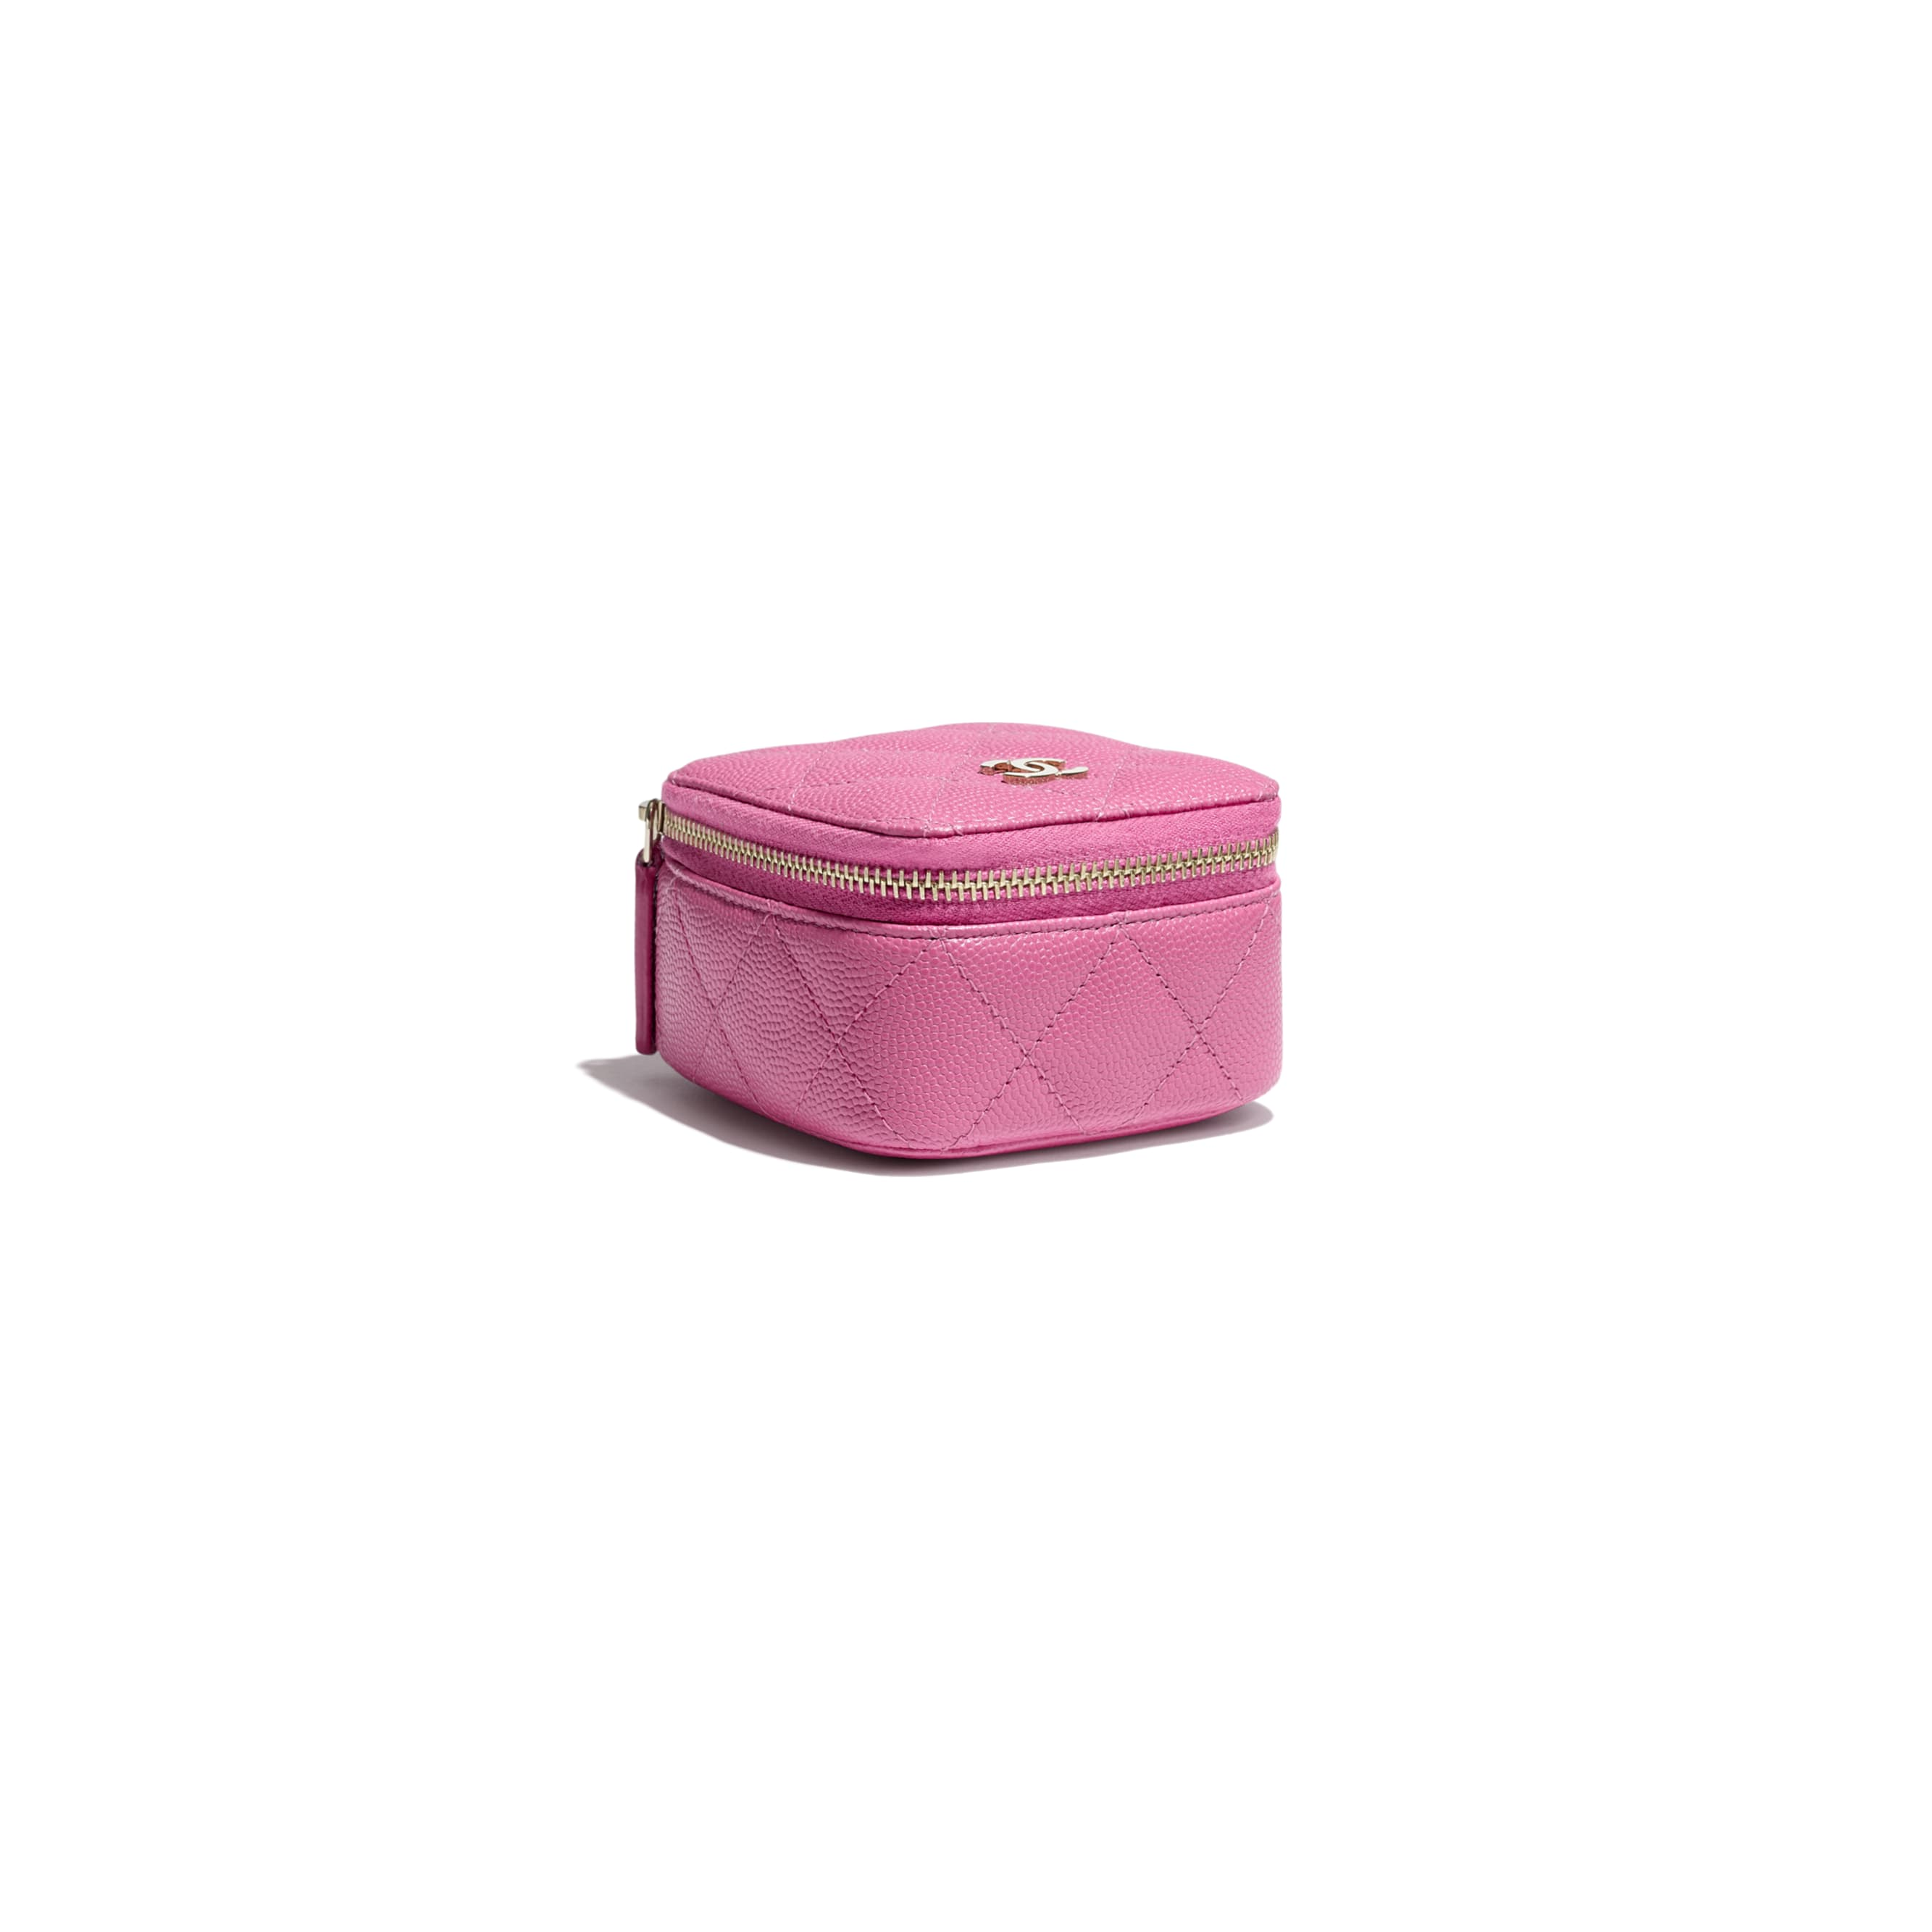 Classic Small Jewellery Pouch - Pink - Grained Calfskin & Gold-Tone Metal - Extra view - see standard sized version